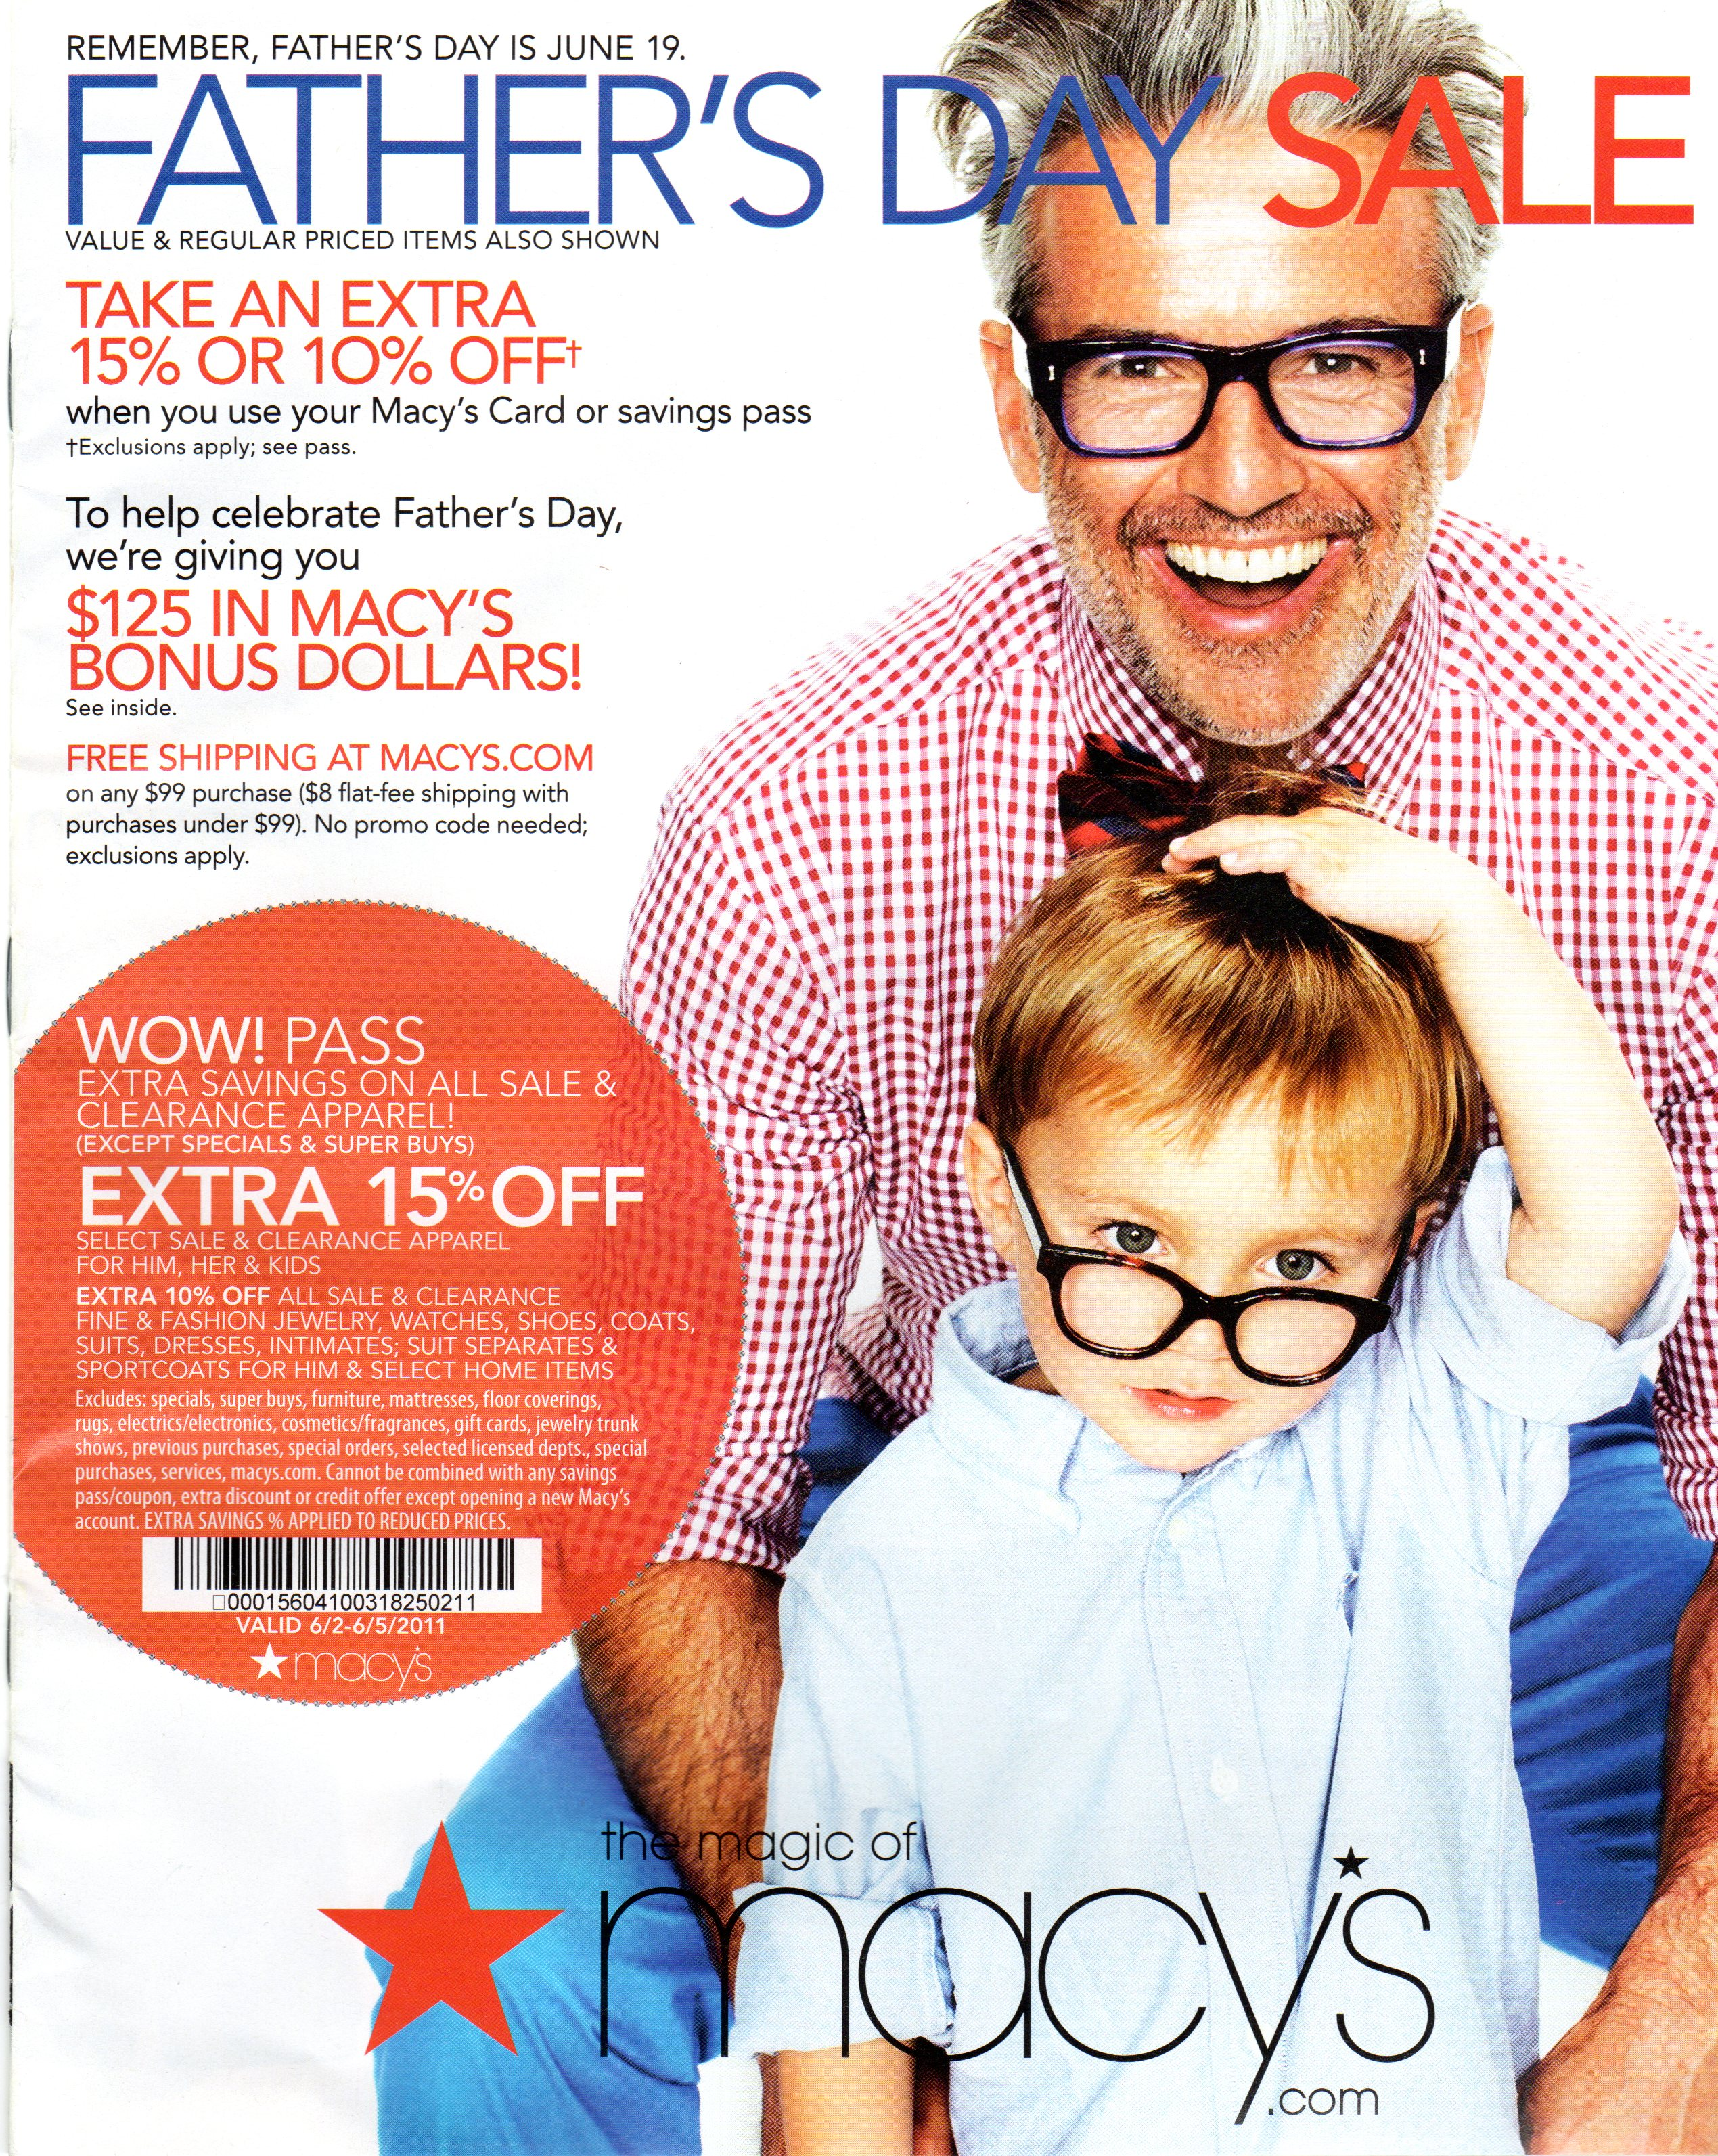 Father's Day ads Here are links to some of the ads for special in-store and online Father's Day deals. (Click on the store name to see the ads and their expiration dates).